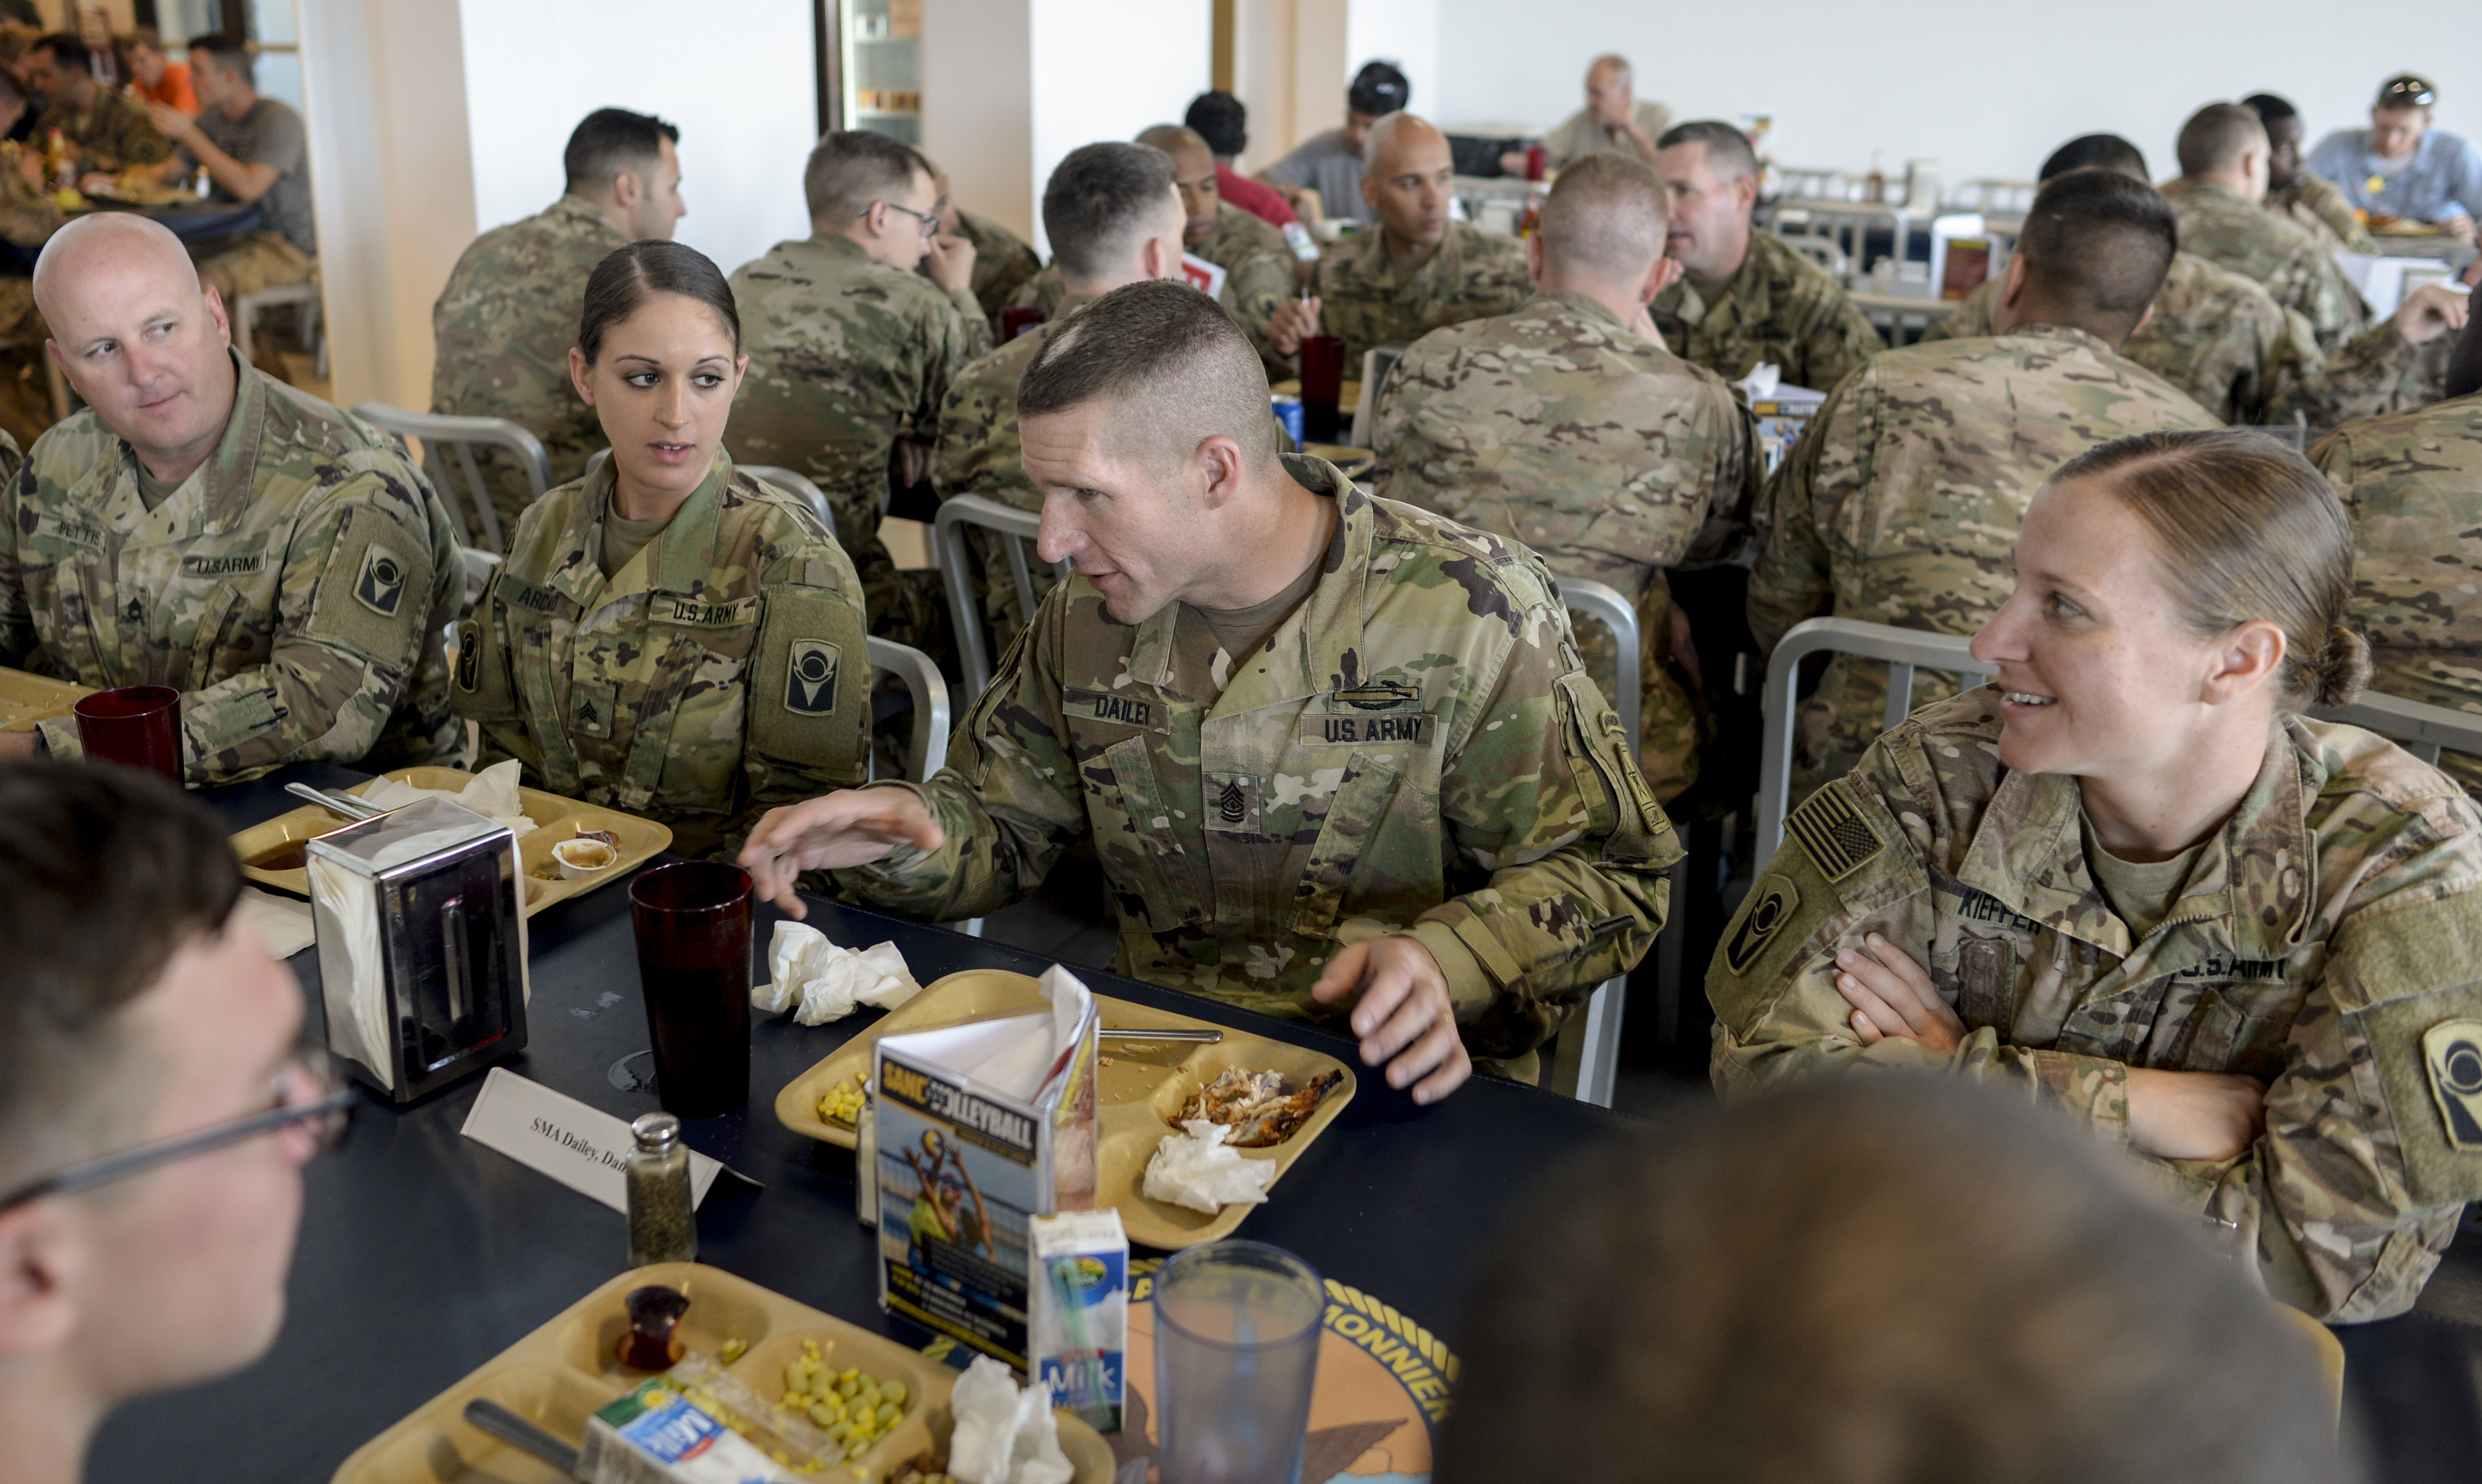 CAMP LEMONNIER, DJIBOUTI- Sgt. Maj. of the Army Daniel Dailey eats lunch with fellow enlisted U.S. Soldiers and discusses the U.S. Army's support of missions in Africa during a visit Nov. 20, 2016. SMA Dailey's focus was on soldiers assigned to Camp Lemonnier and the challenges they face in Eastern Africa. (U.S. Air National Guard photo by Staff Sgt. Christian Jadot)